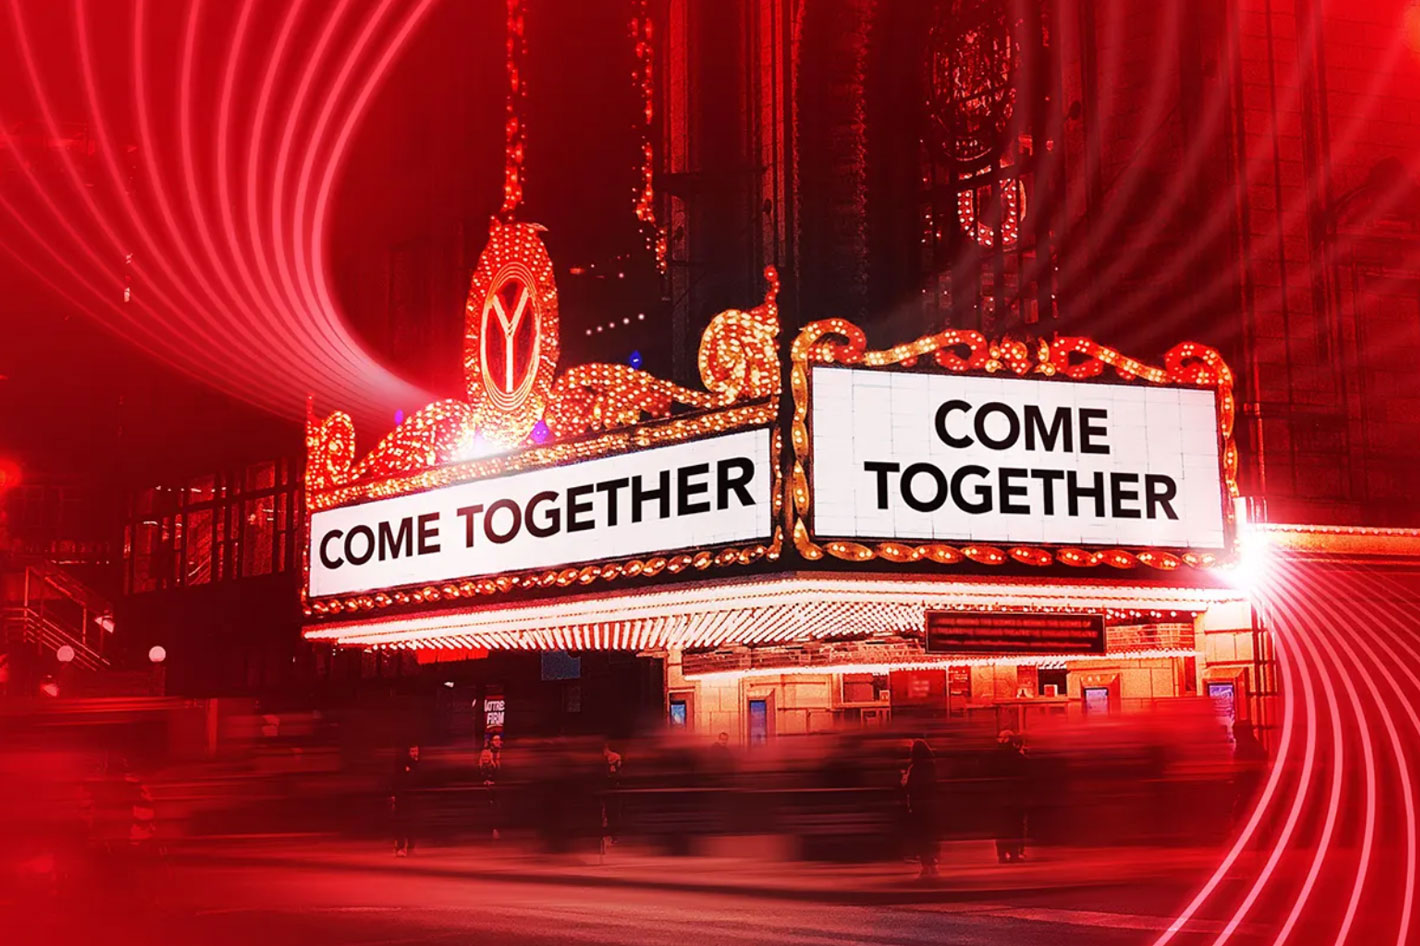 IBC2021 will be an in-person event: get together again next December